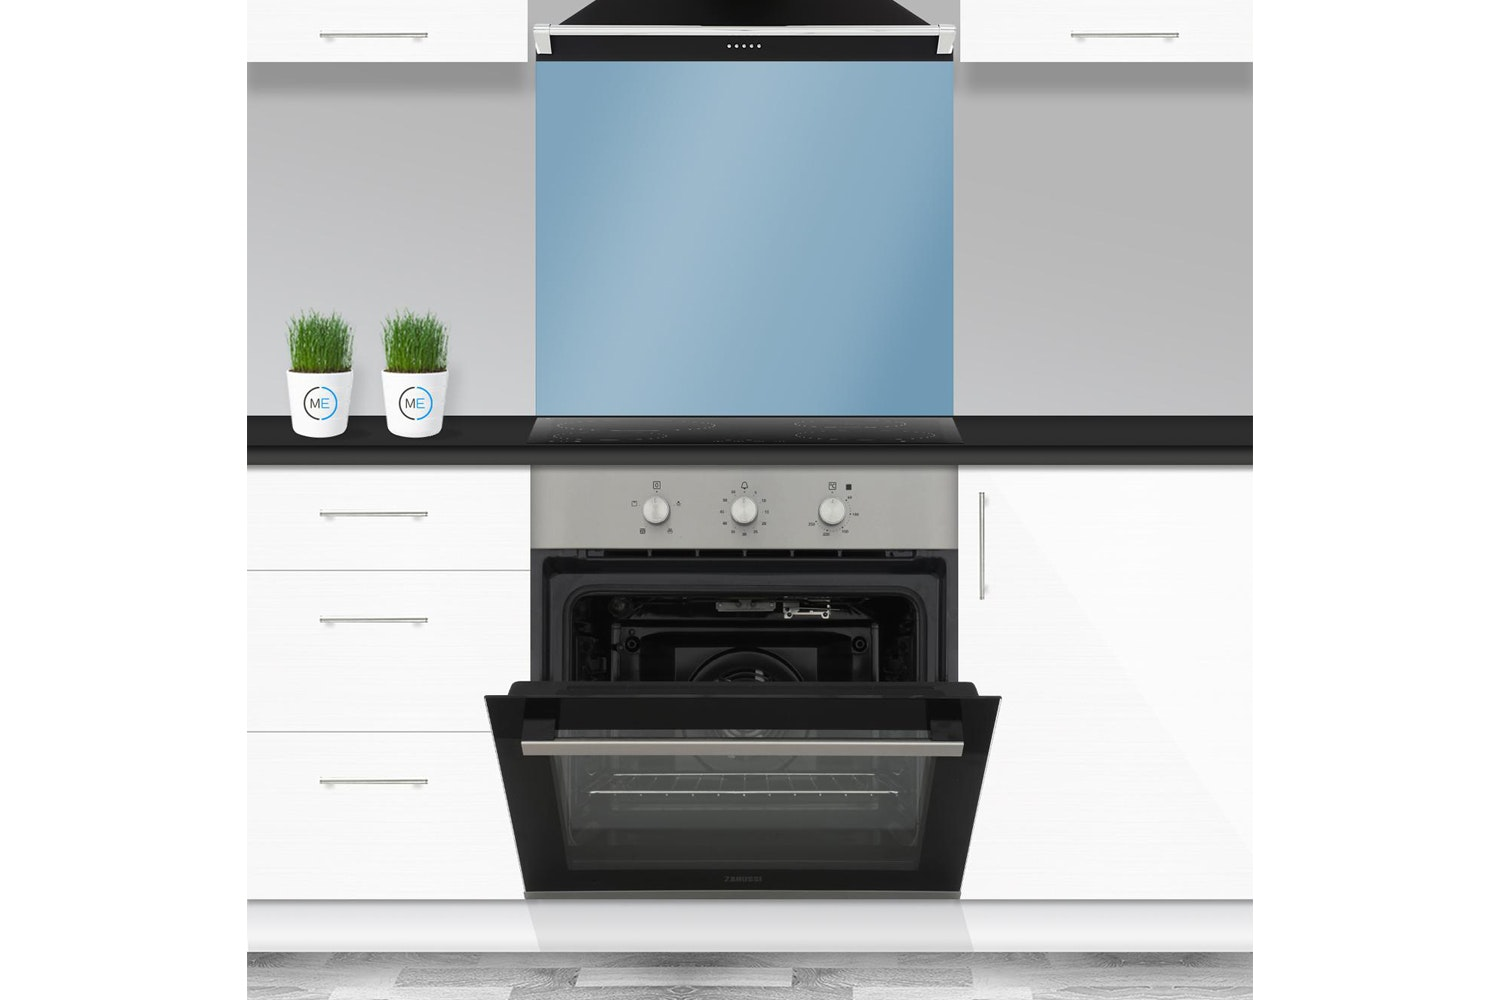 Zanussi Built In Electric Single Oven Stainless Steel | ZOB31471XK